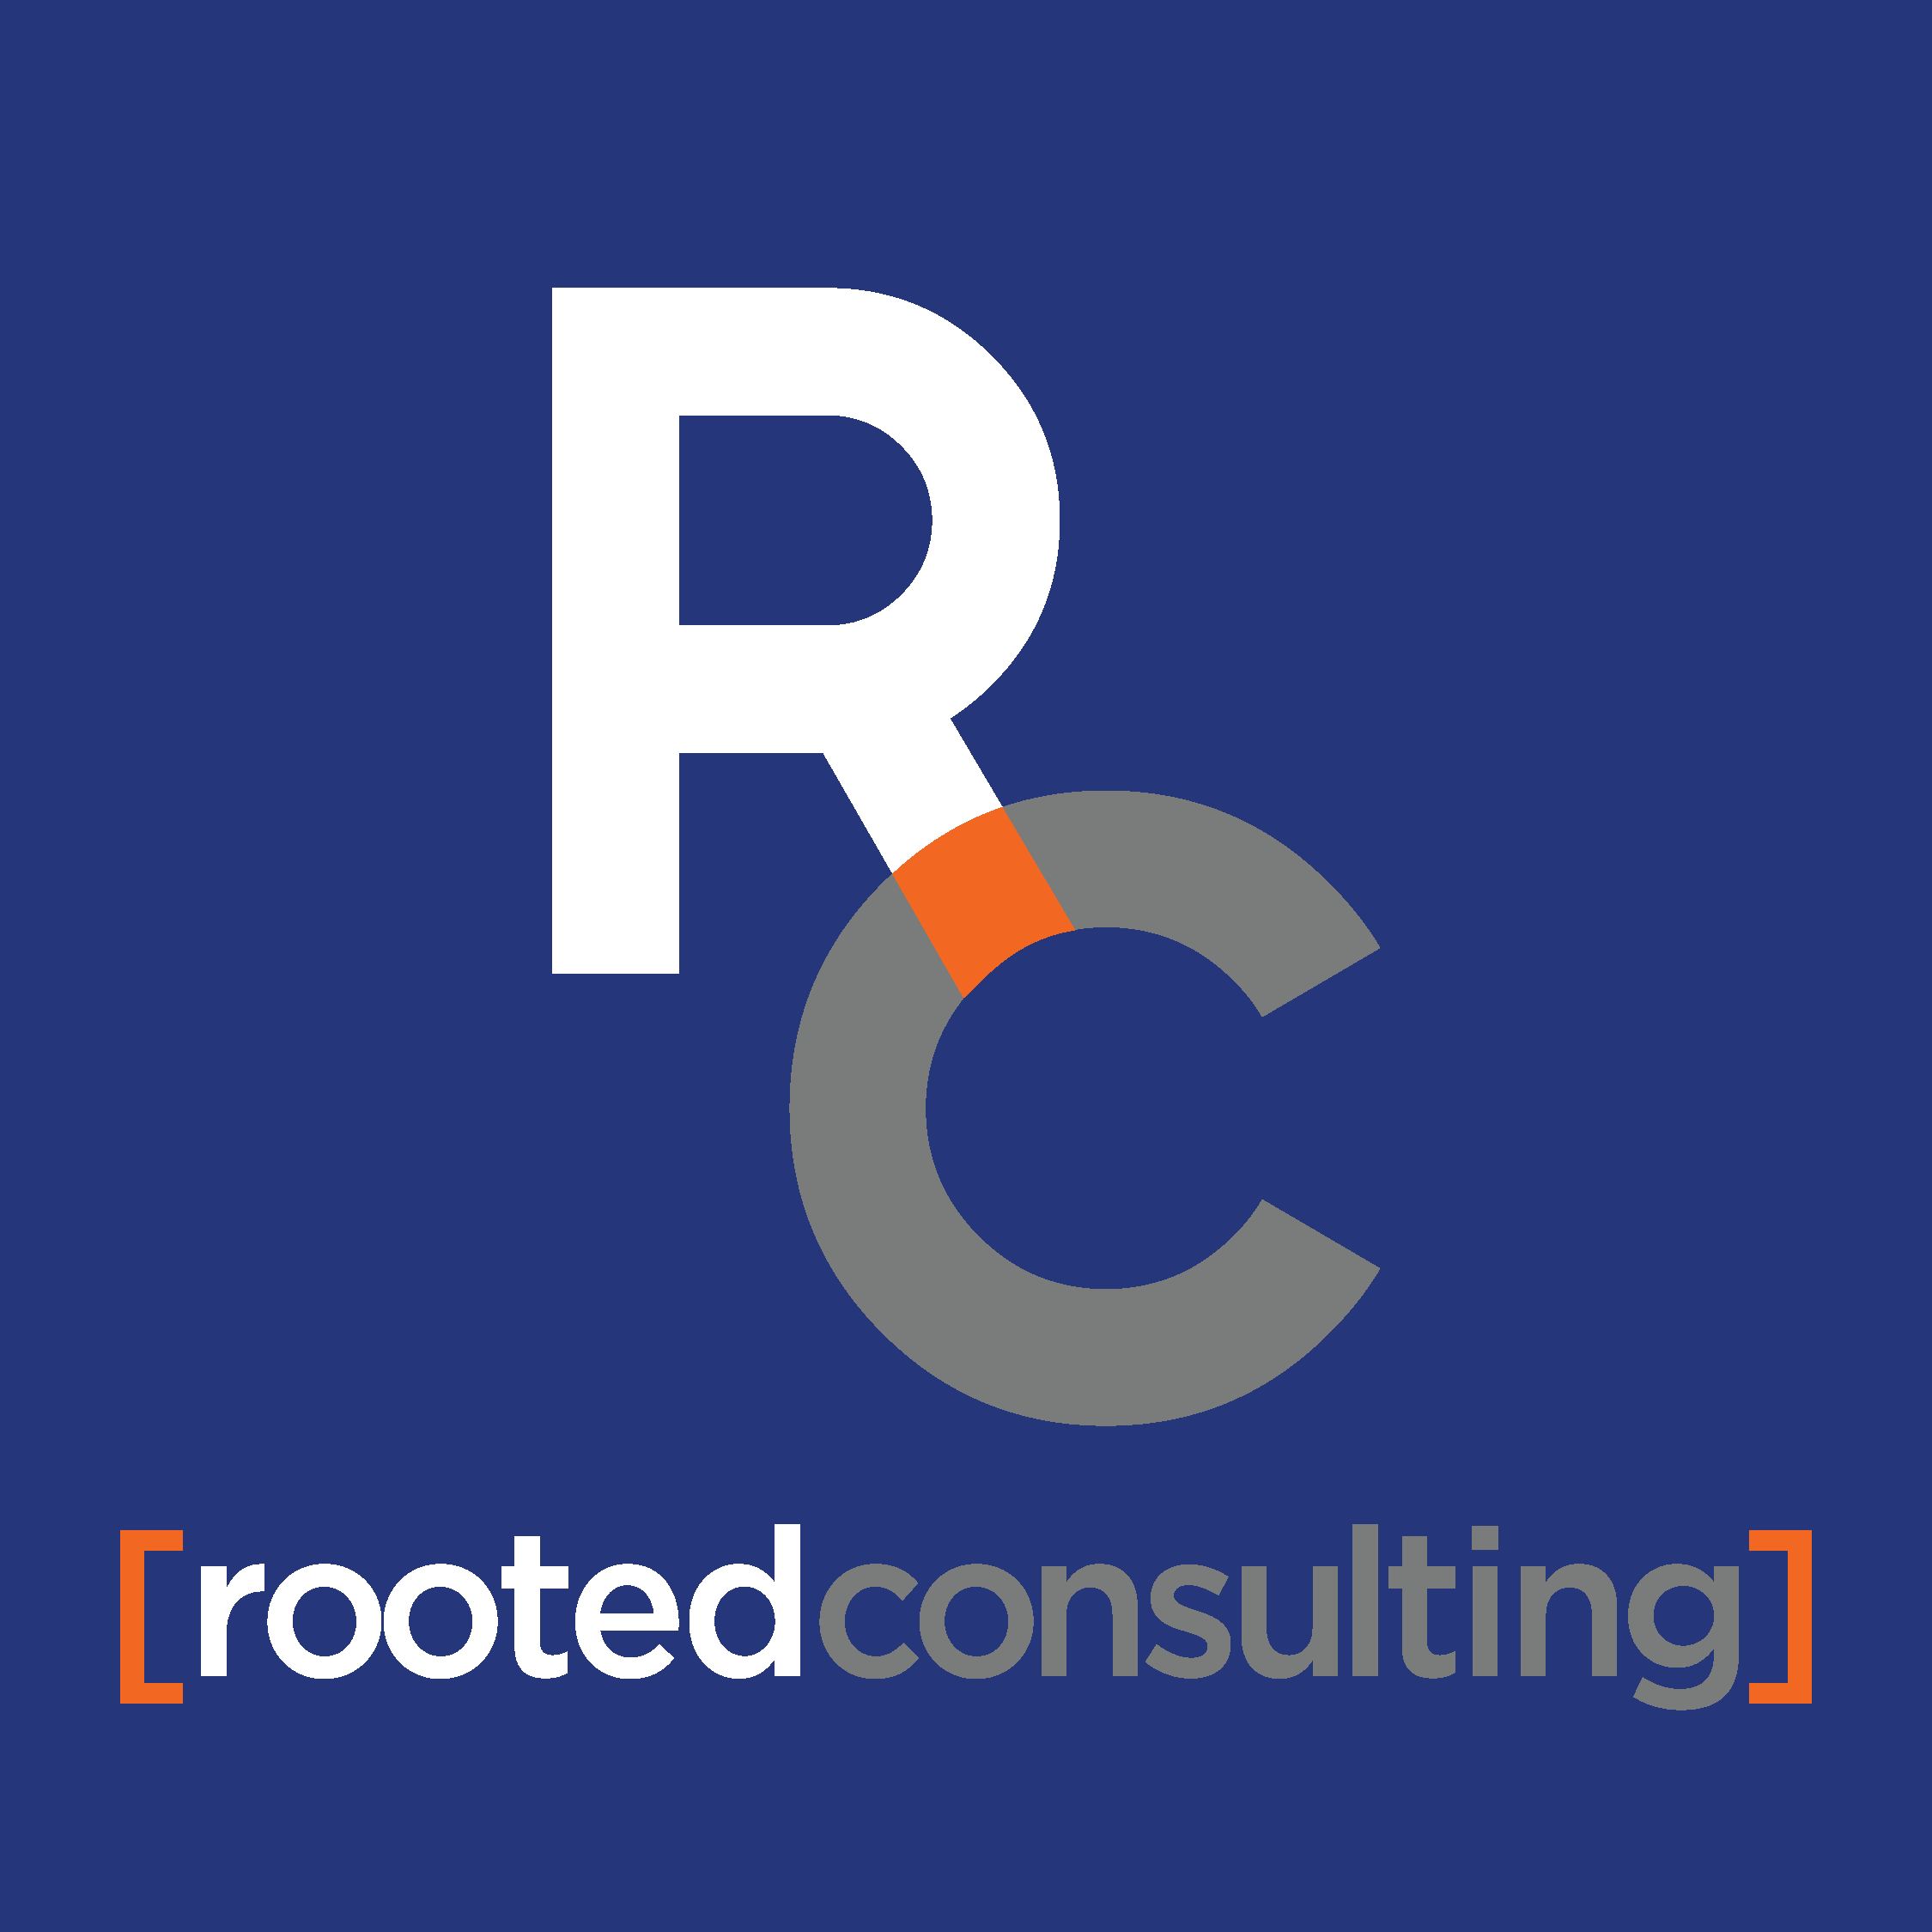 Rooted Consulting: Your business, firmly planted. Help Center home page